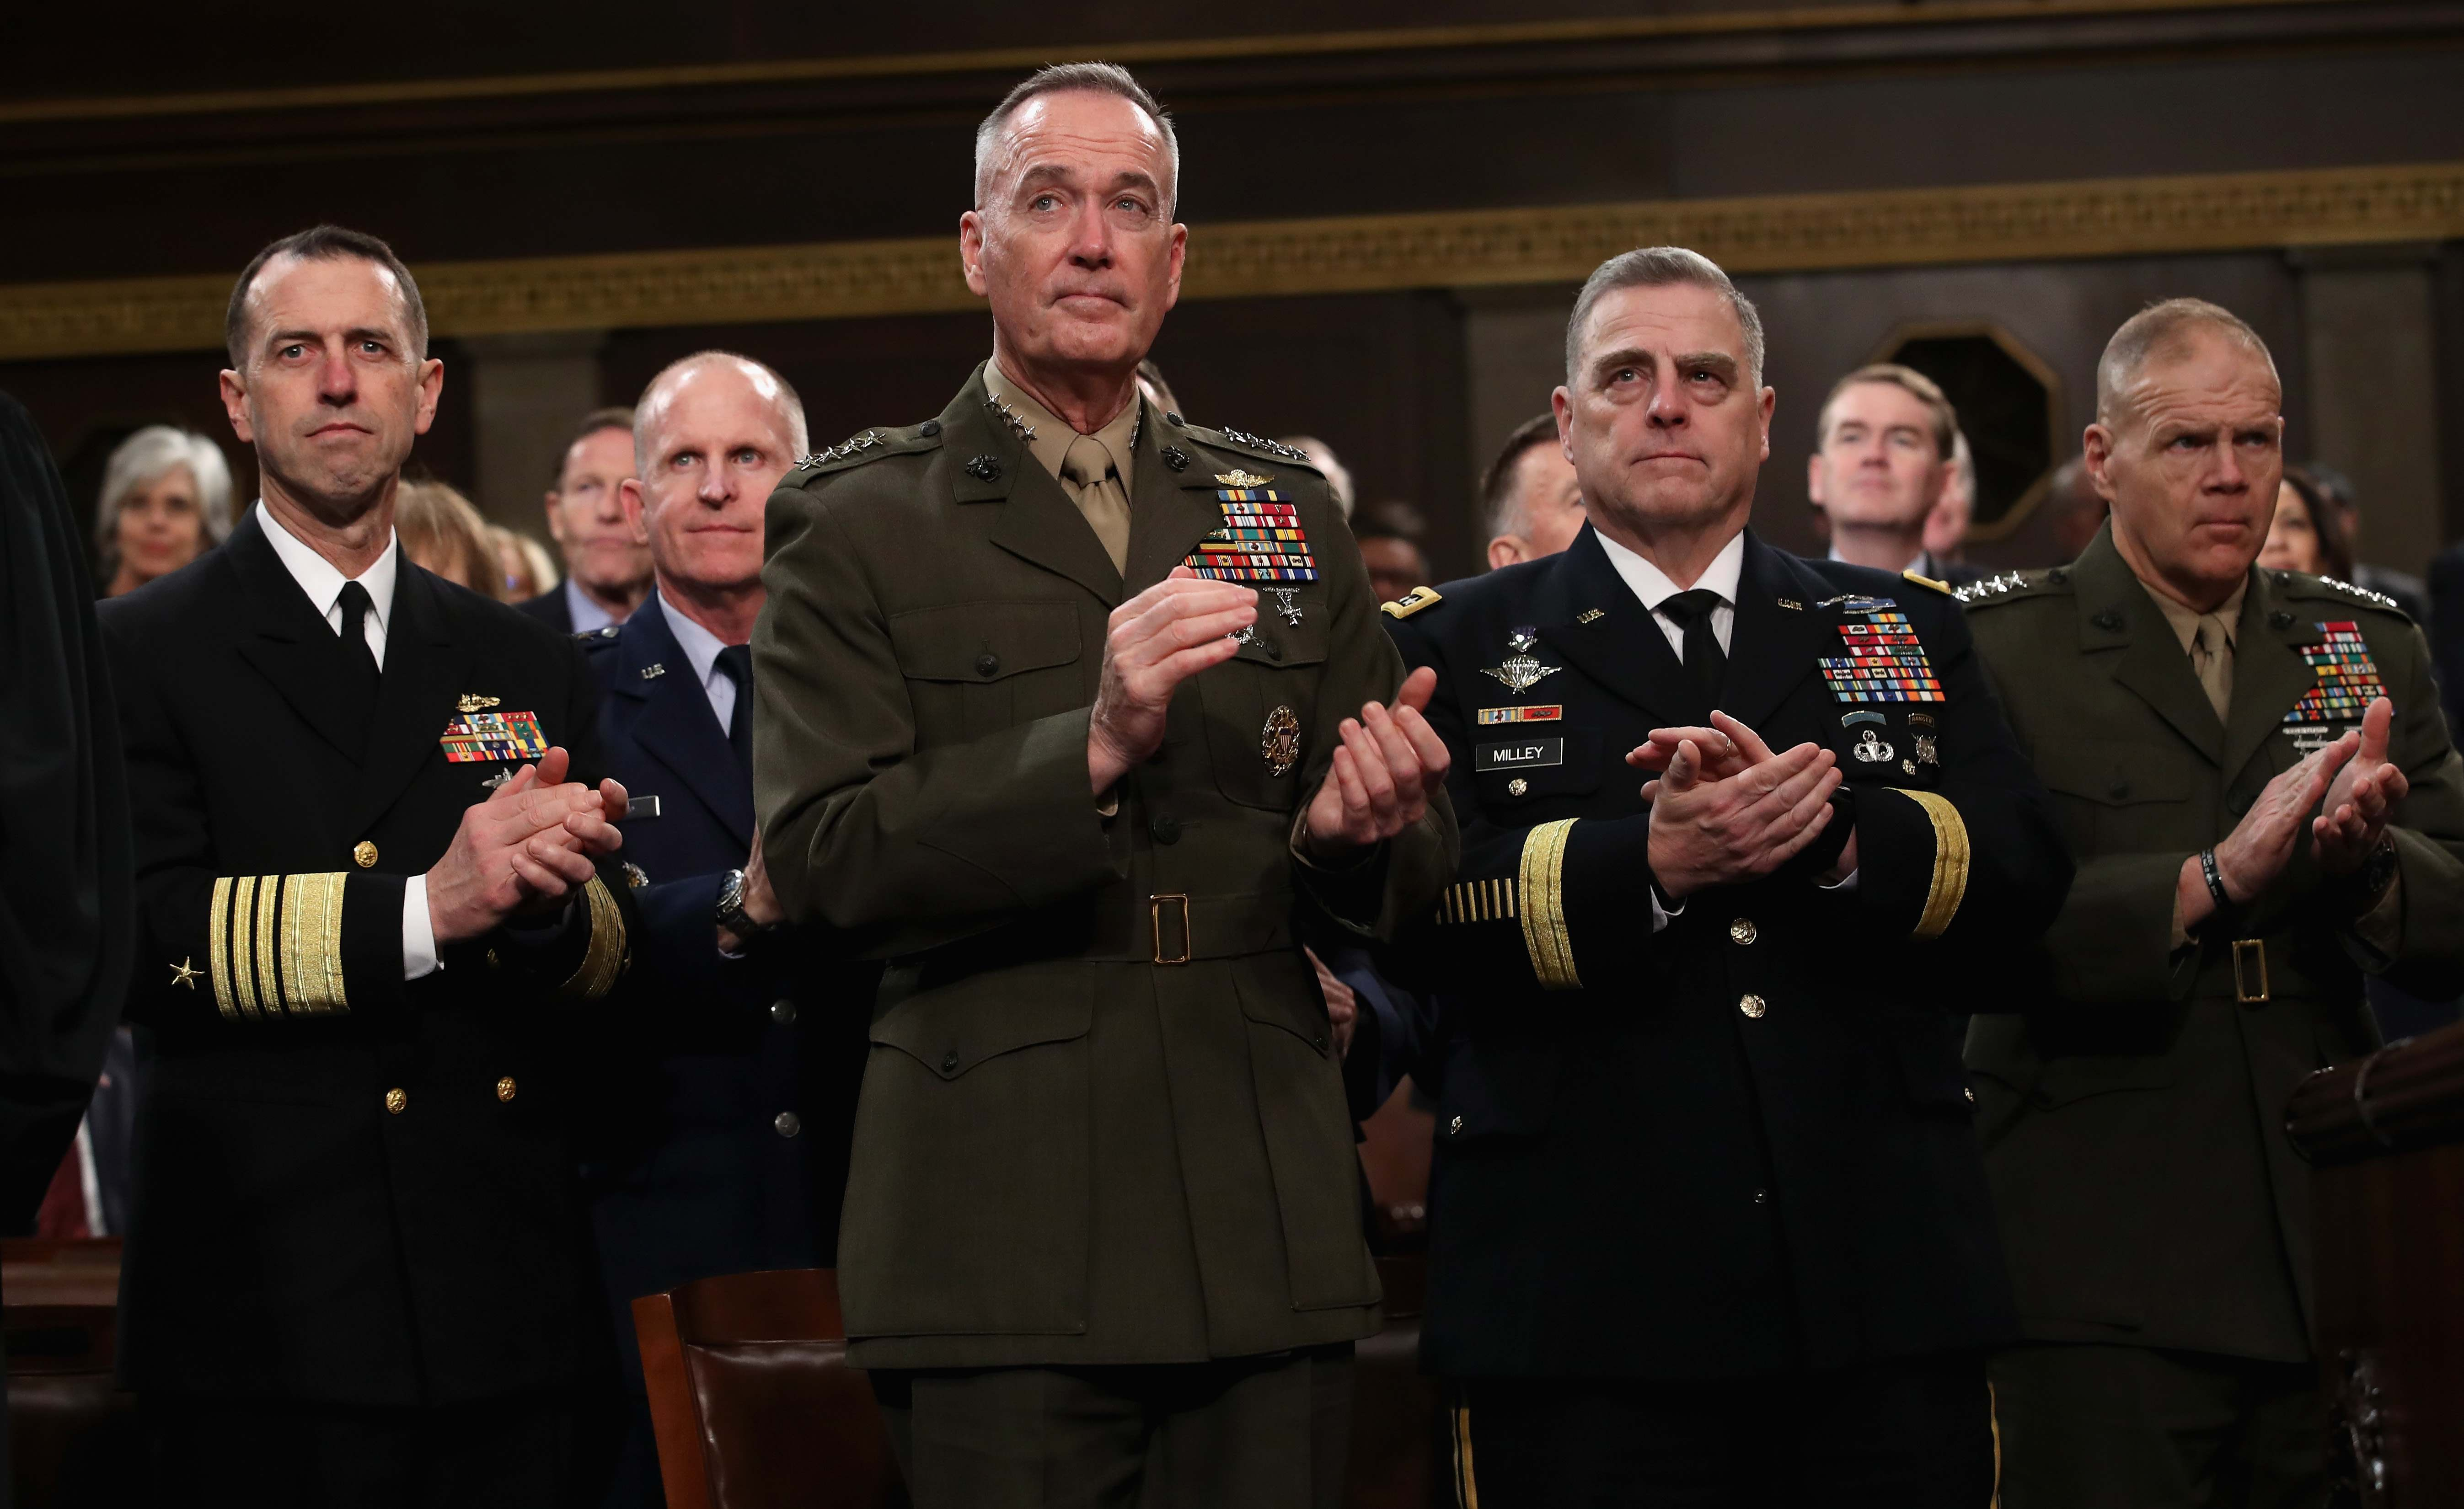 Military chiefs applaud as U.S. President Donald Trump delivers his first State of the Union address in Washington